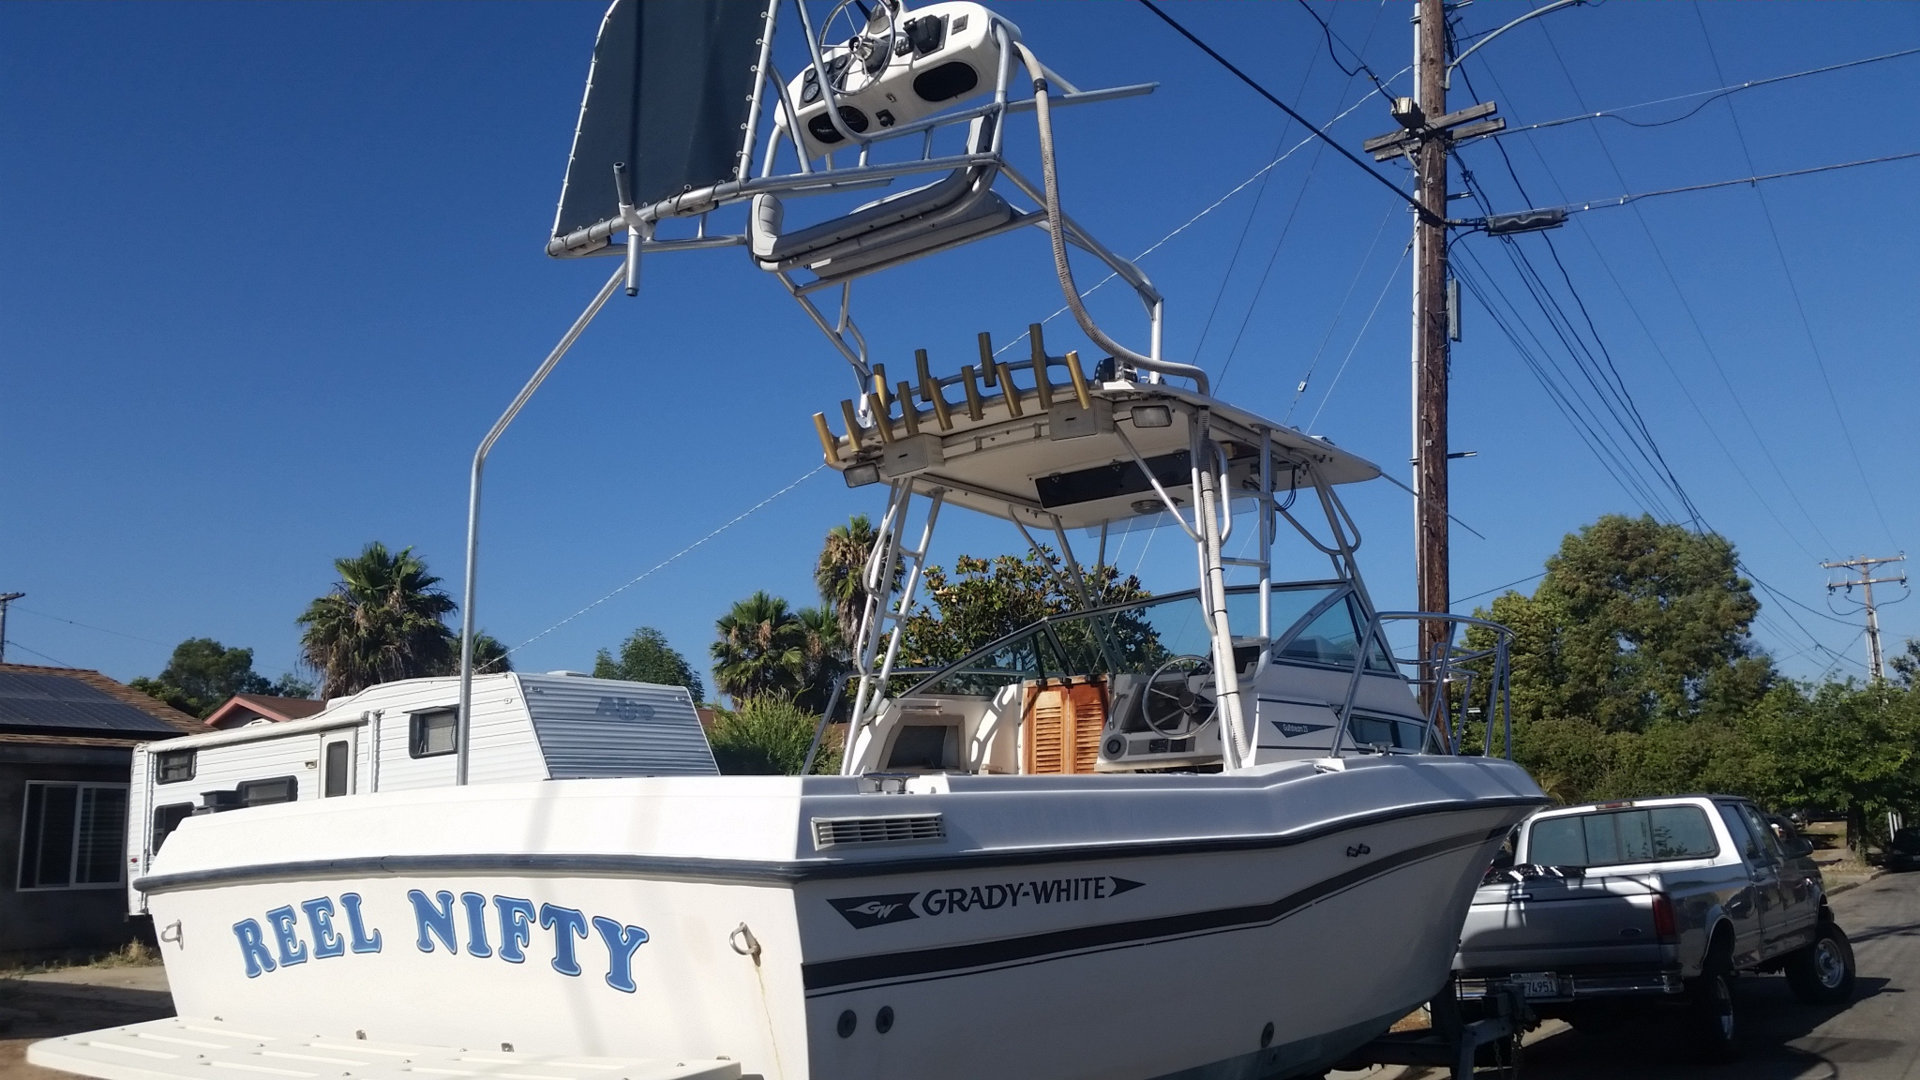 23 ft grady white sailfish diesel | Bloodydecks